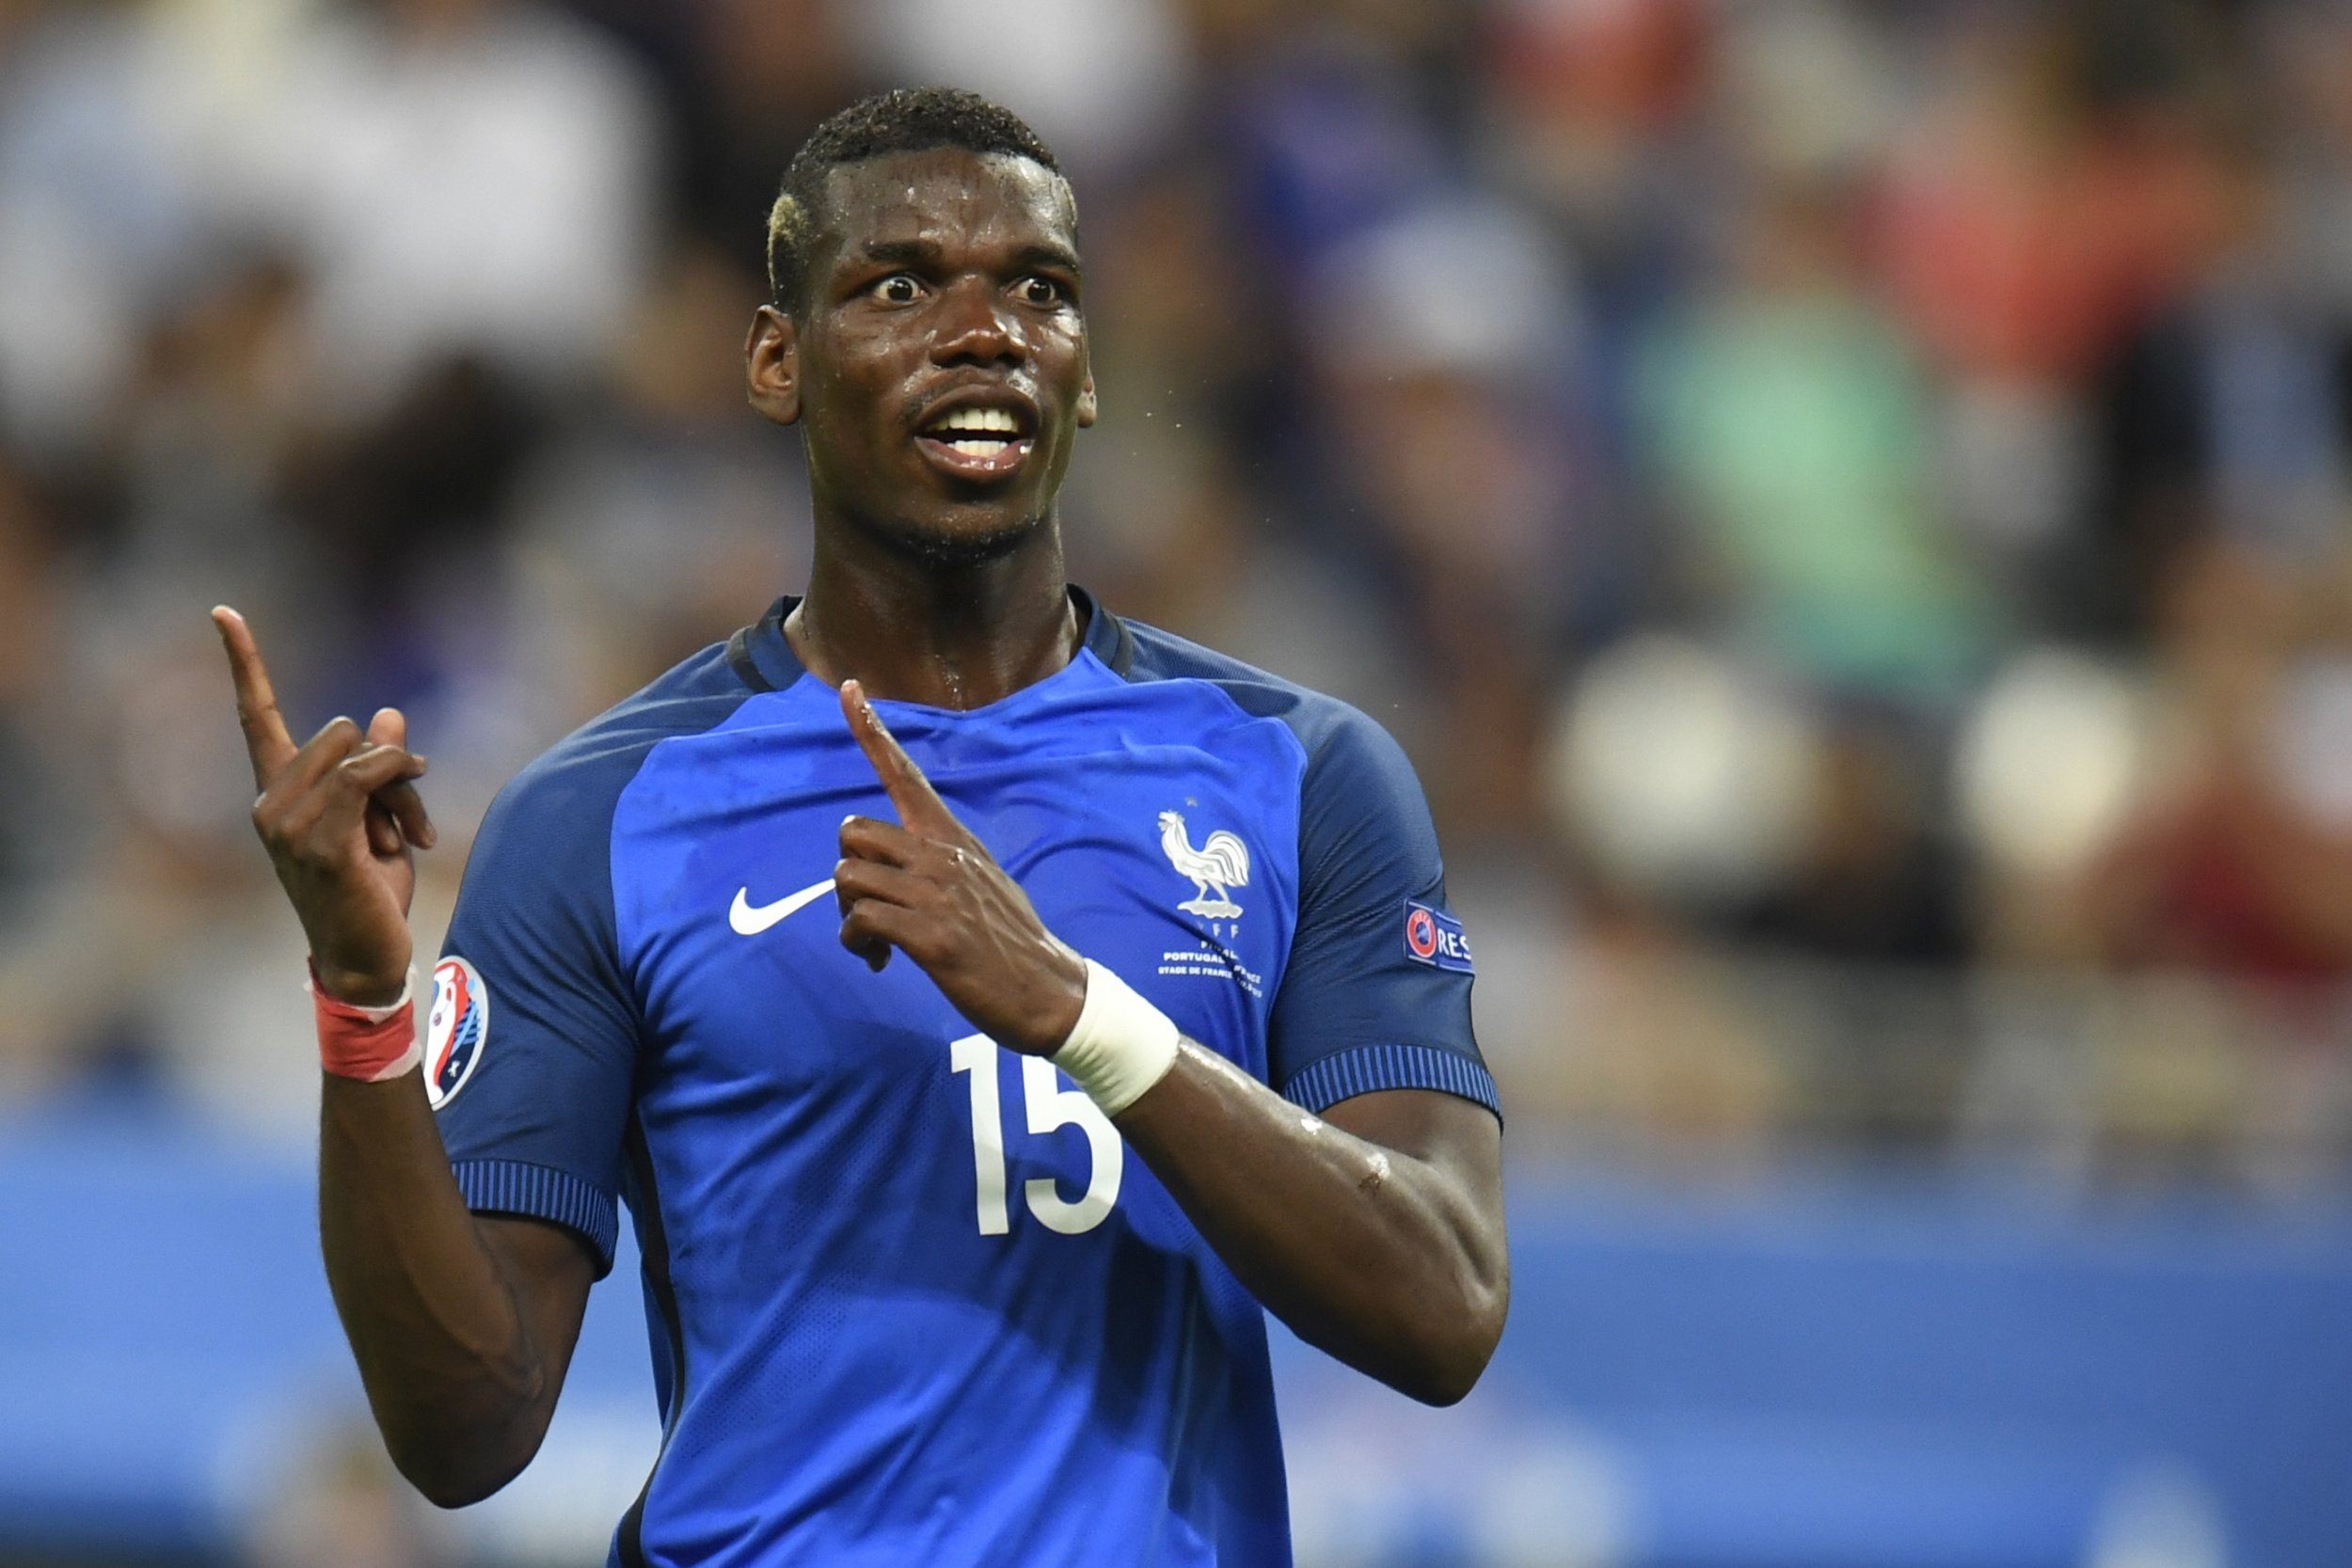 Manchester United and France midfielder Paul Pogba